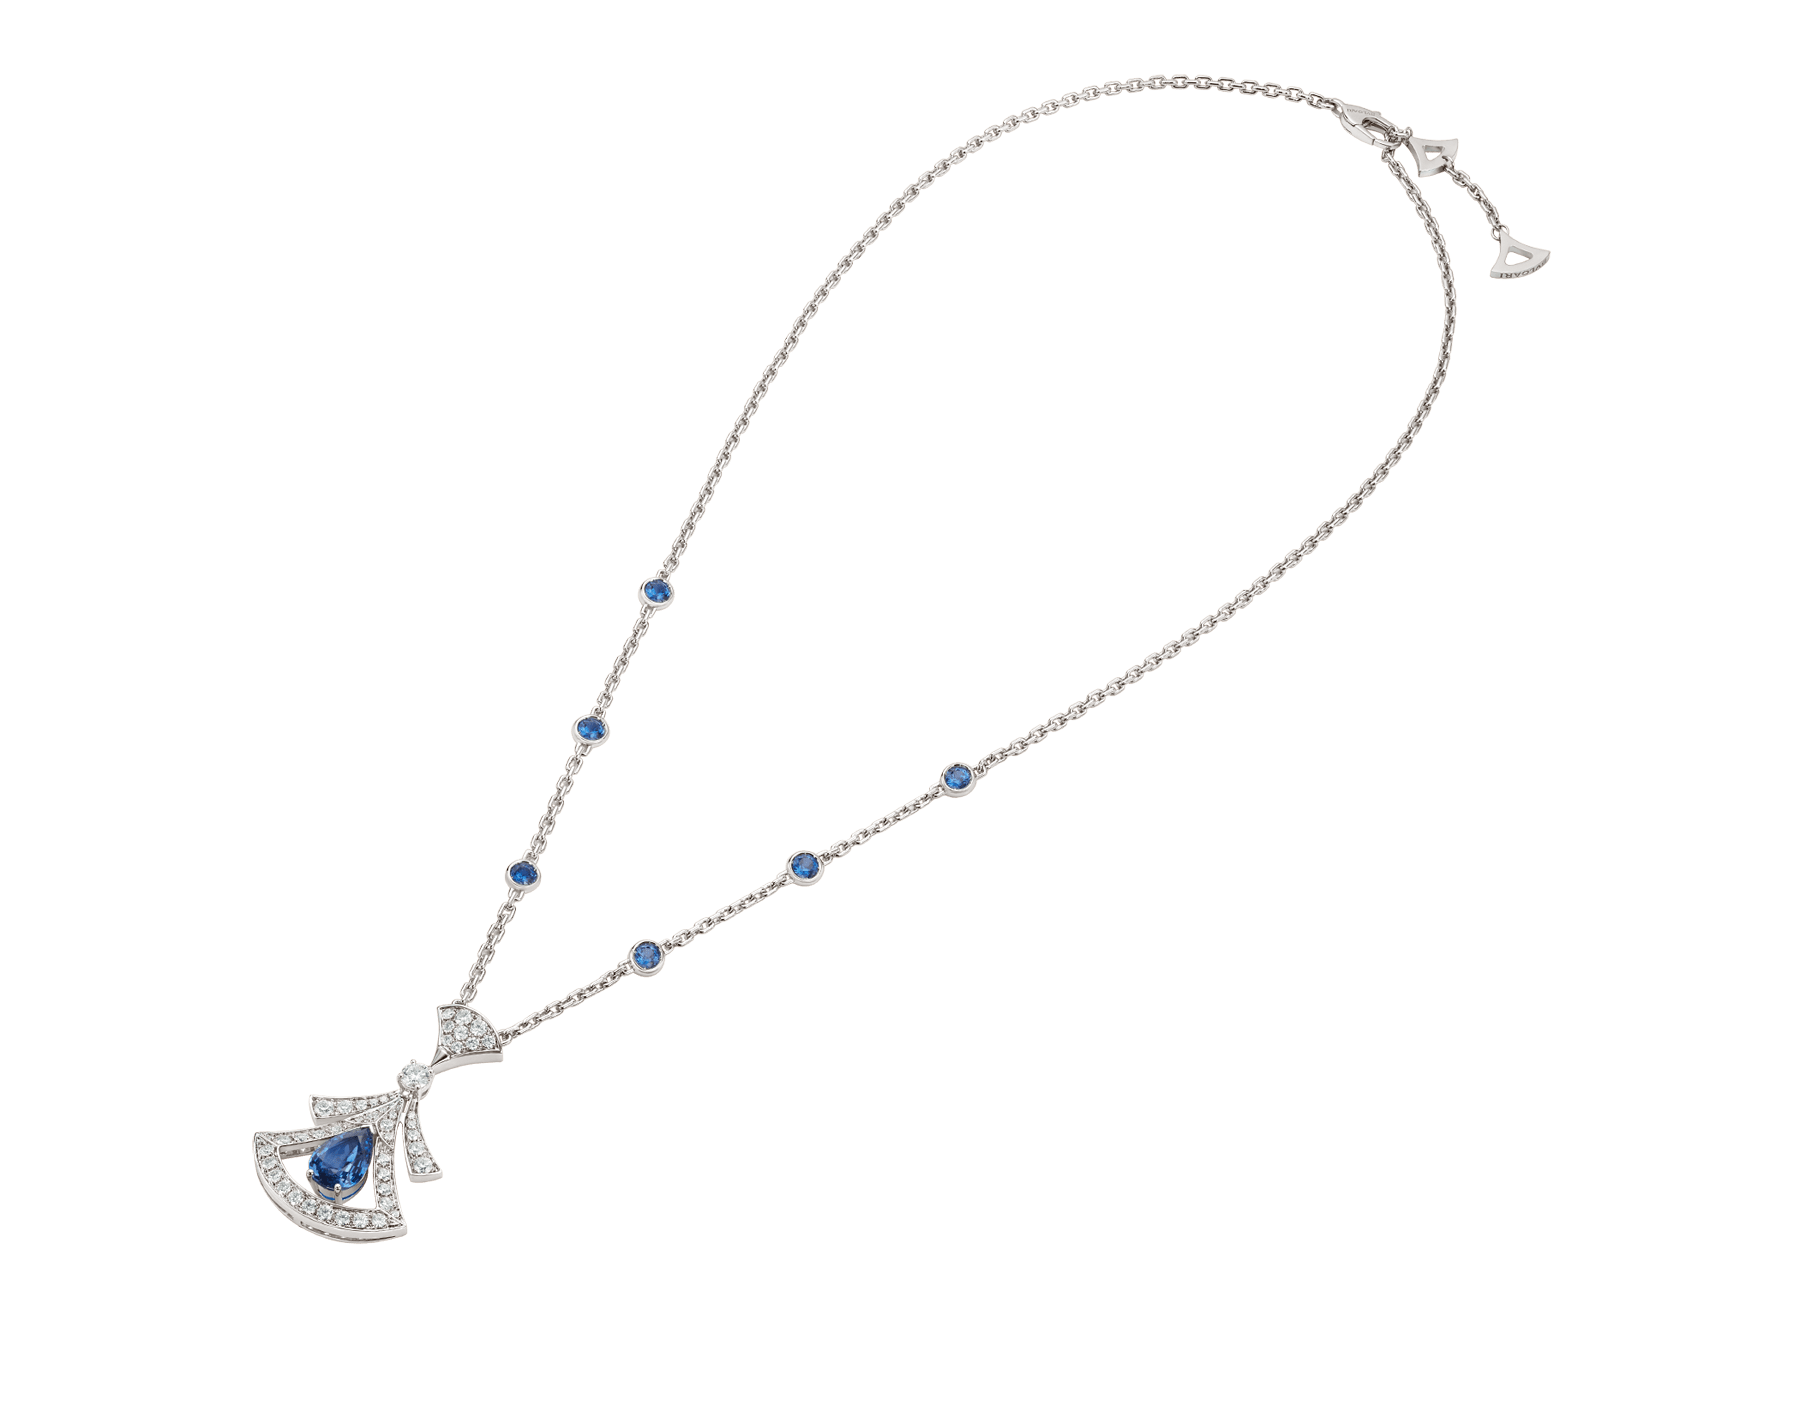 DIVAS' DREAM 18 kt white gold openwork necklace set with a pear-shaped sapphire, round brilliant-cut sapphires, a round brilliant-cut diamond and pavé diamonds. 357325 image 3